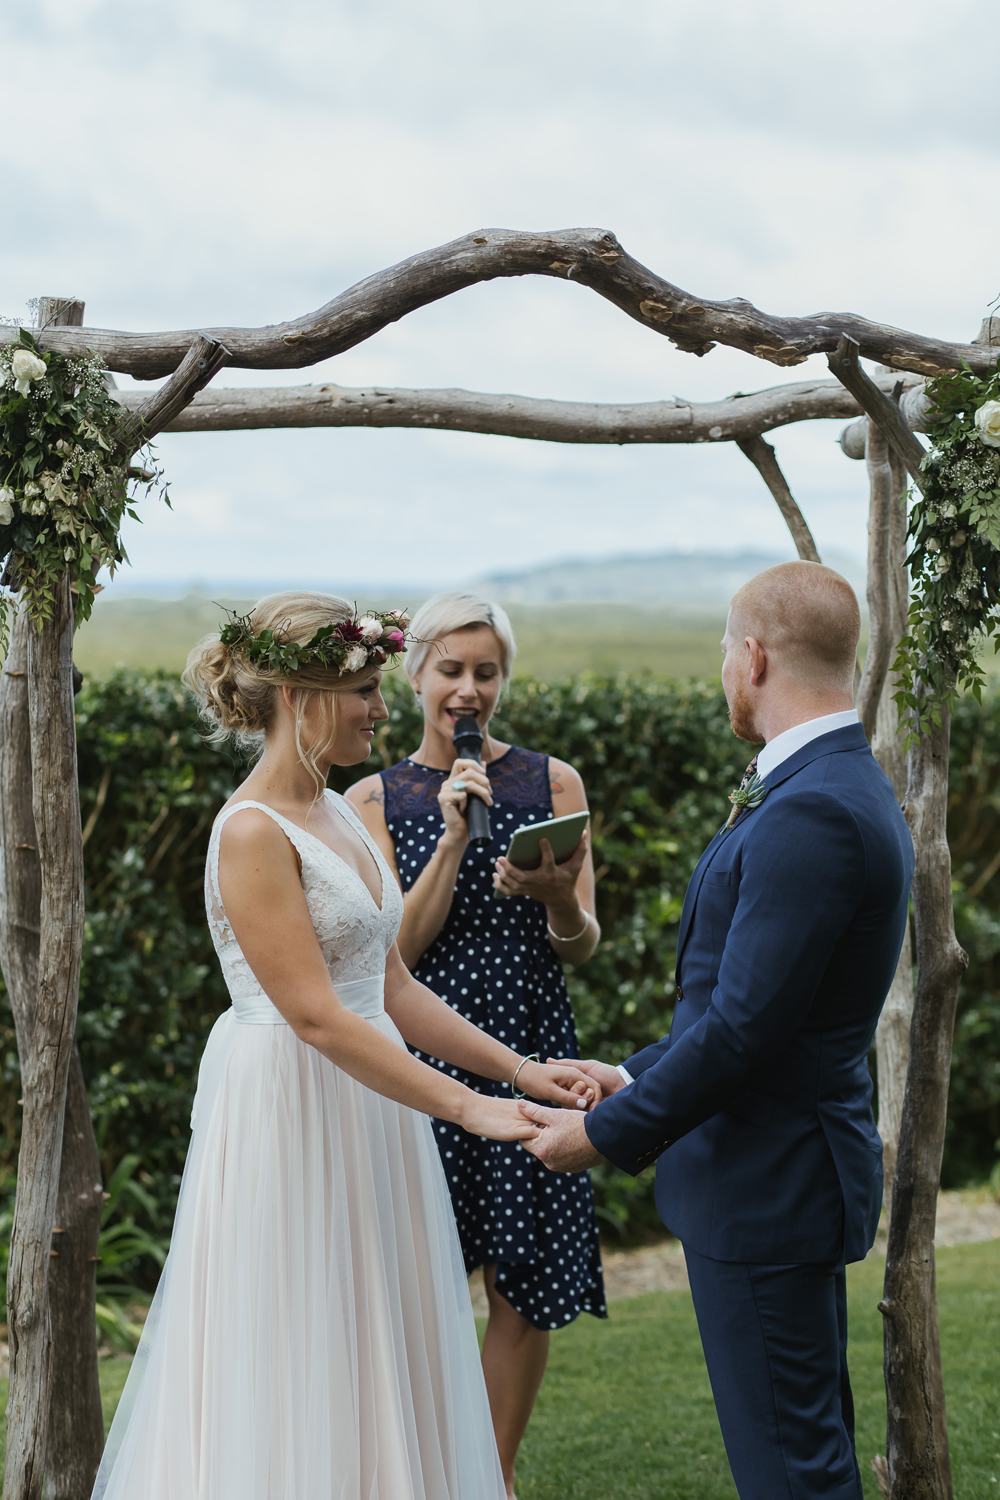 255-Byron-Bay-Wedding-Photographer-Carly-Tia-Photography.jpg